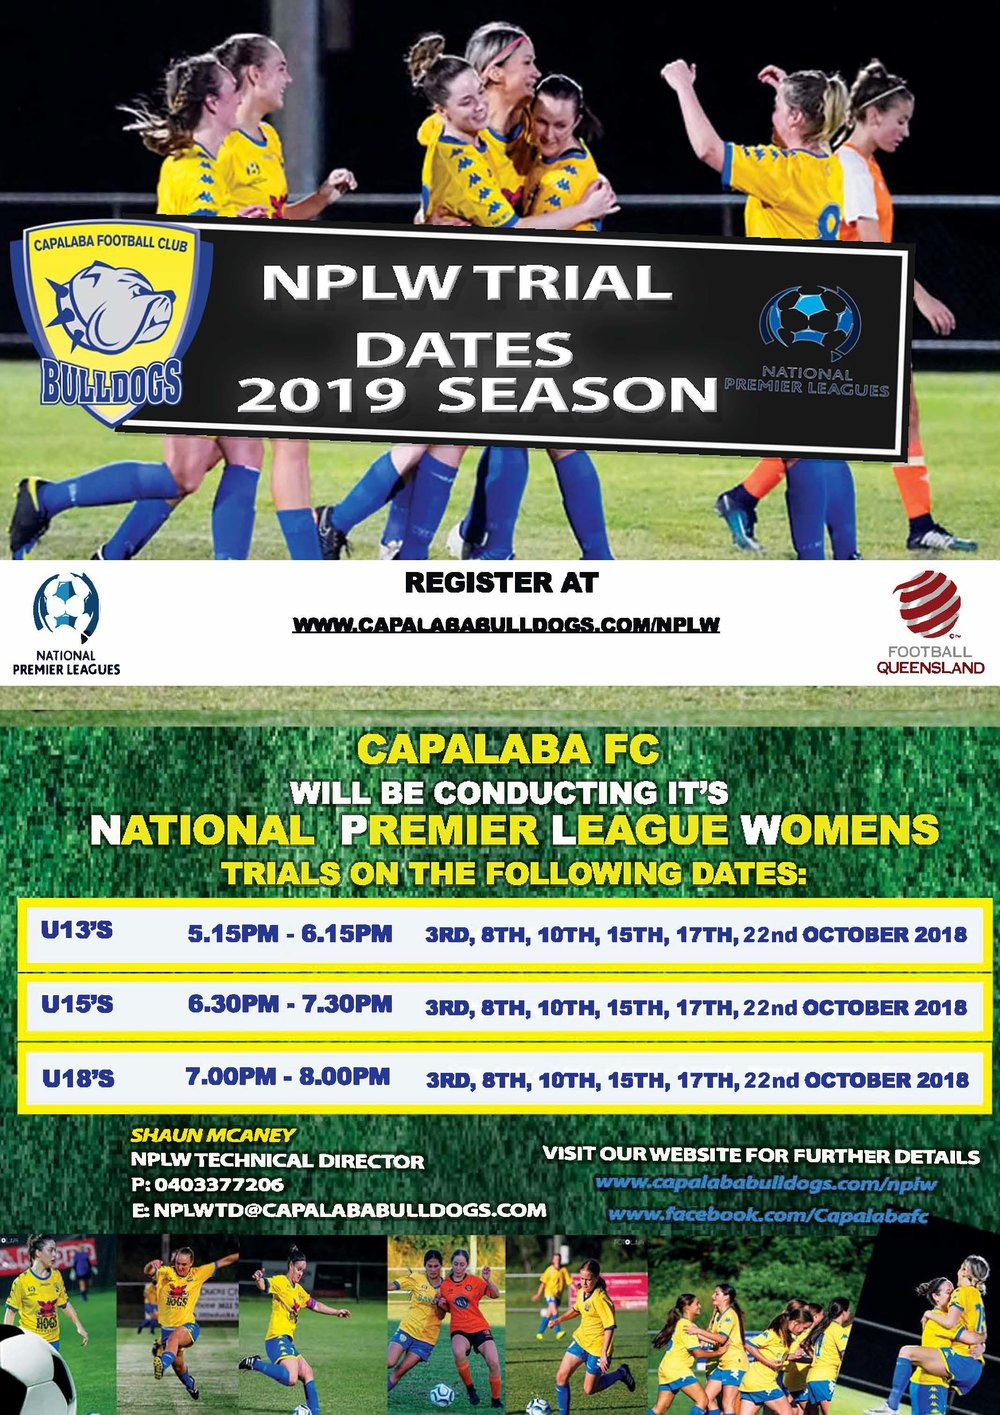 Capalaba FC NPLW Trial Dates 2019 Season Flyer 110918.jpg